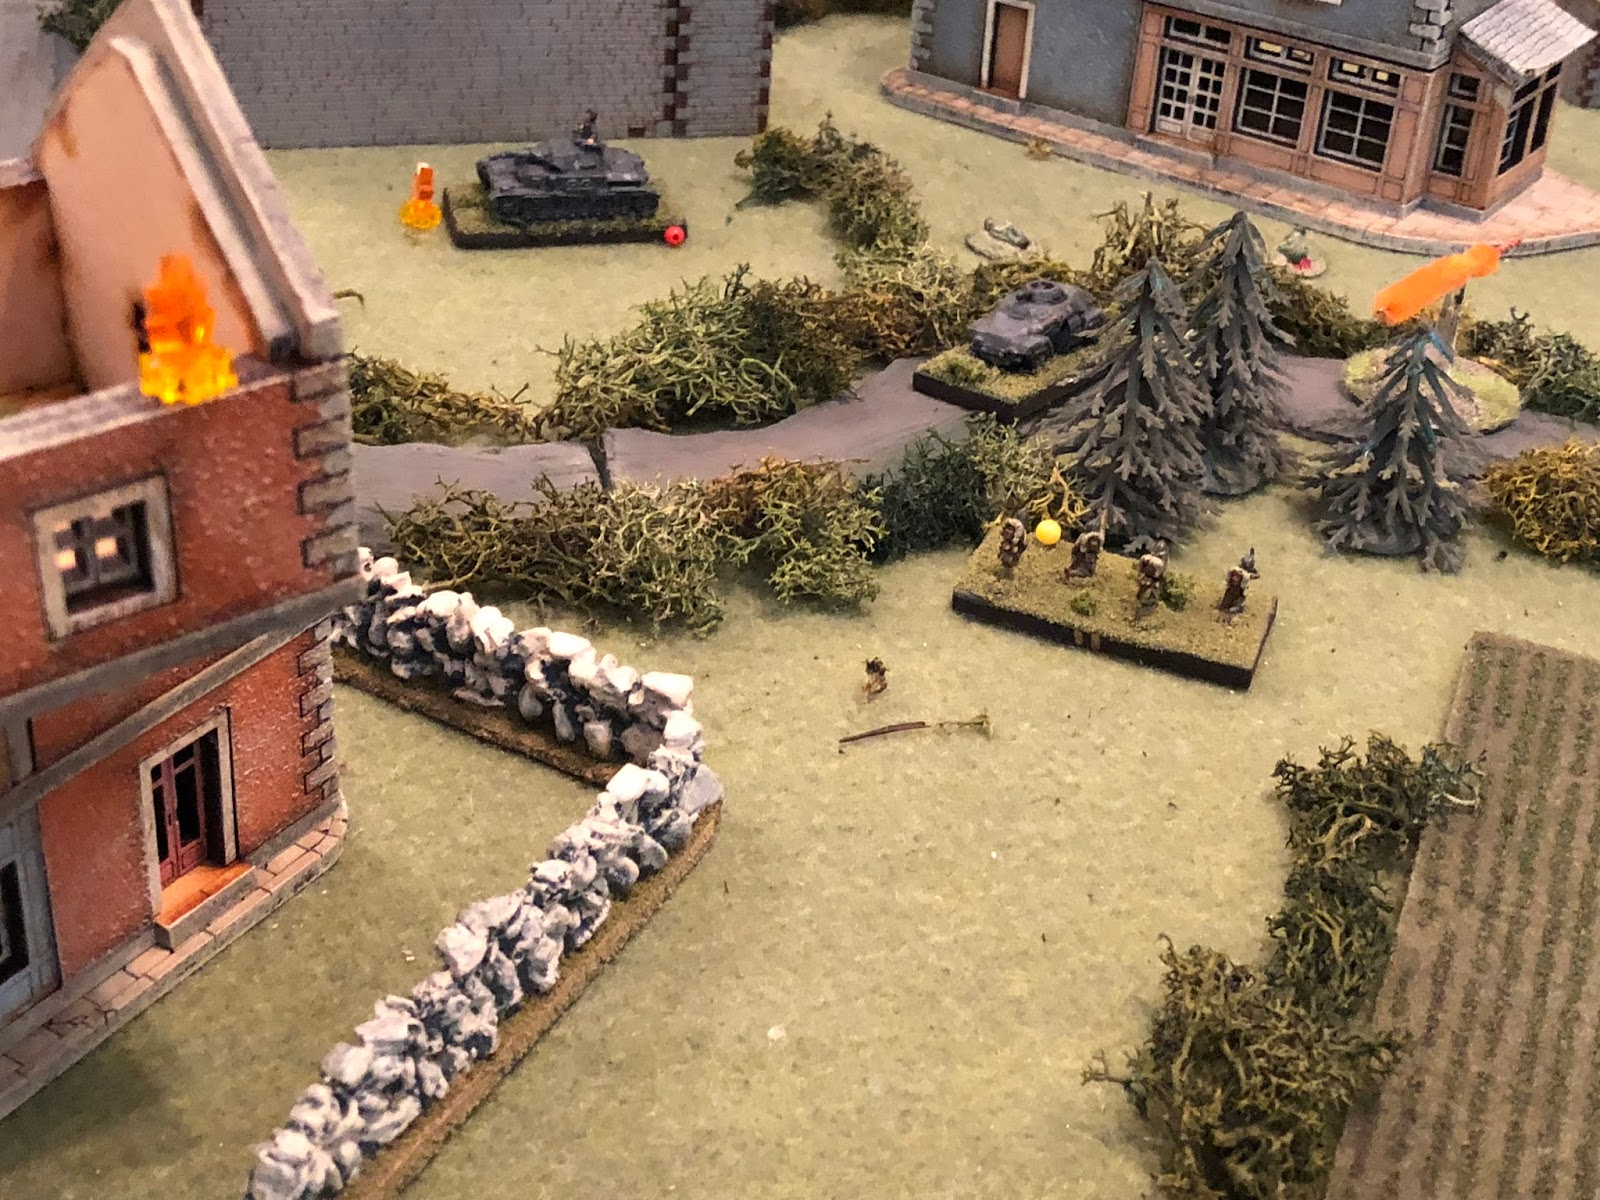 When the French tank round skipped off of SSgt Mangold's Pz IV (top centre) it made a hell of a CLANG!, drawing Cpl Edsts's attention (centre top right, on the road), distracting him long enough for the French 2nd Platoon squad at ground level to hop the wall and dash to a nearby stand of trees (centre right, from centre left).  *The boy knows his troops have a good chance of close assaulting and winning against the Sdkfz 221 armored car, and if they can beat that it will be a cinch to take out SSgt Mangold's shaken up panzer crew.